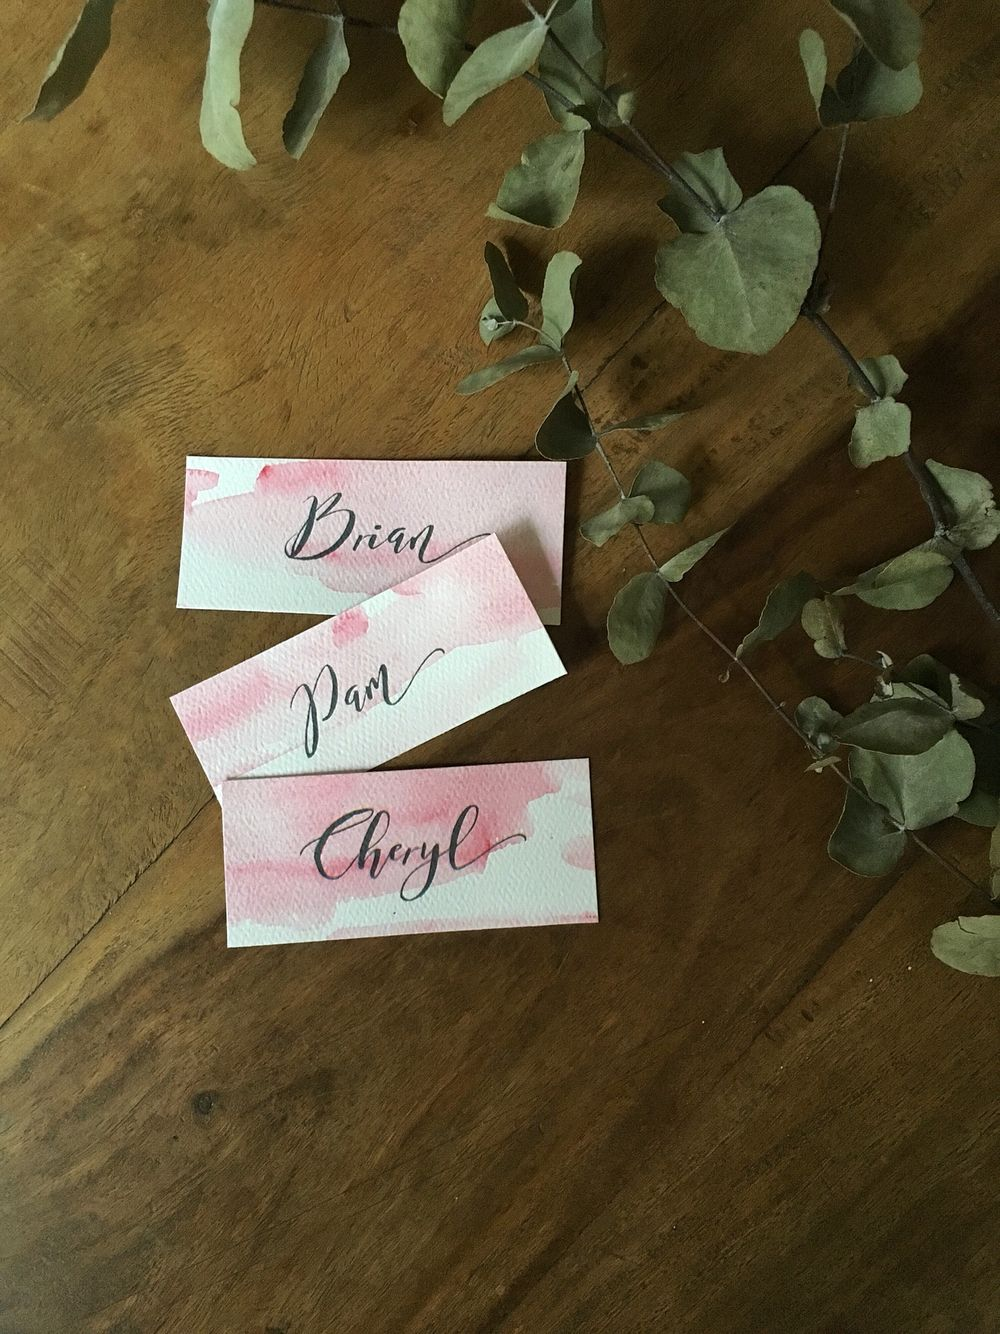 Handmade watercolour wedding name tags by laura elizabeth design